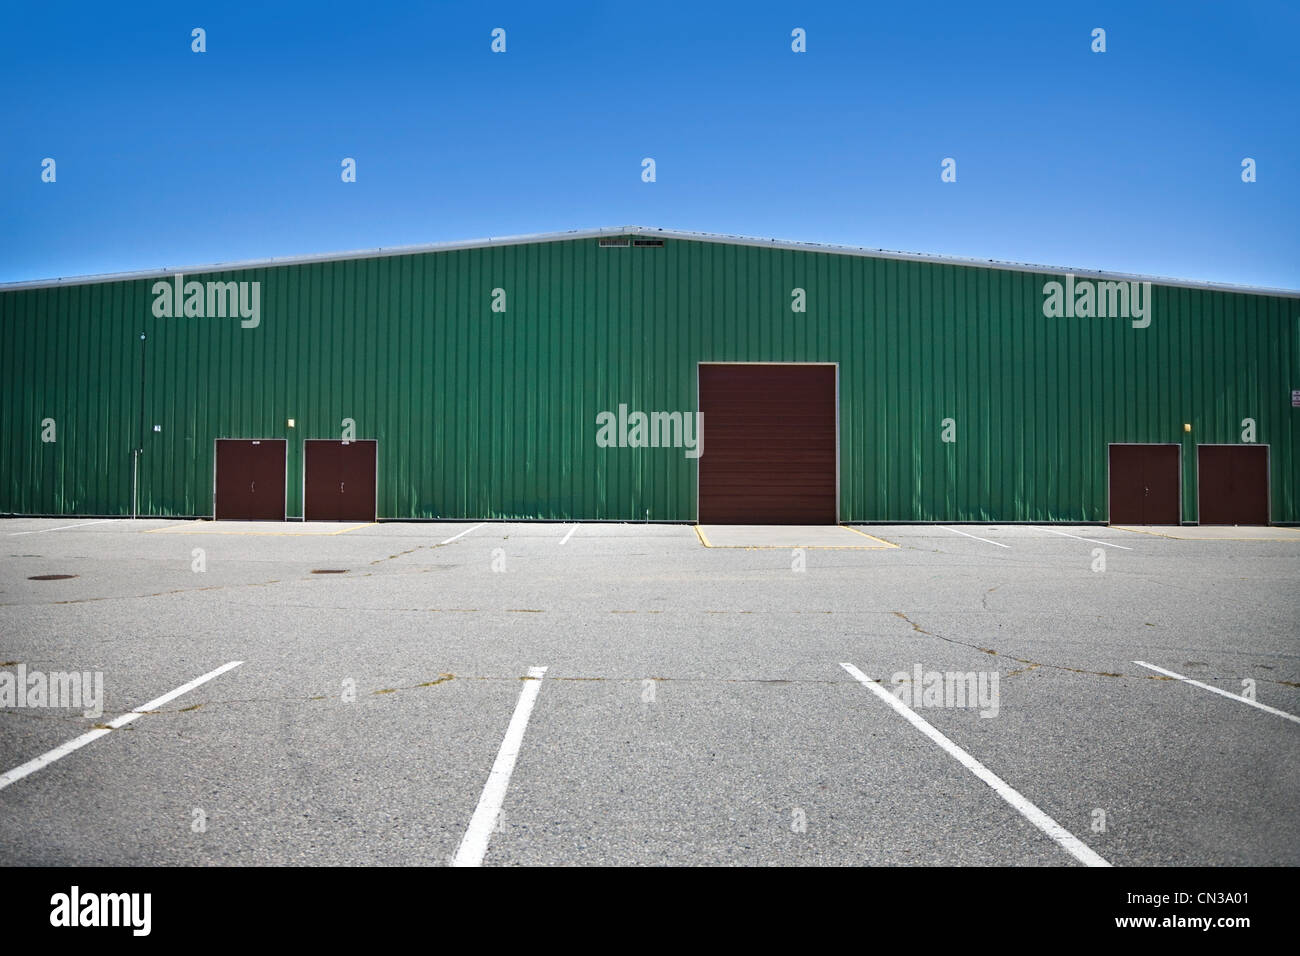 Community hall - Stock Image